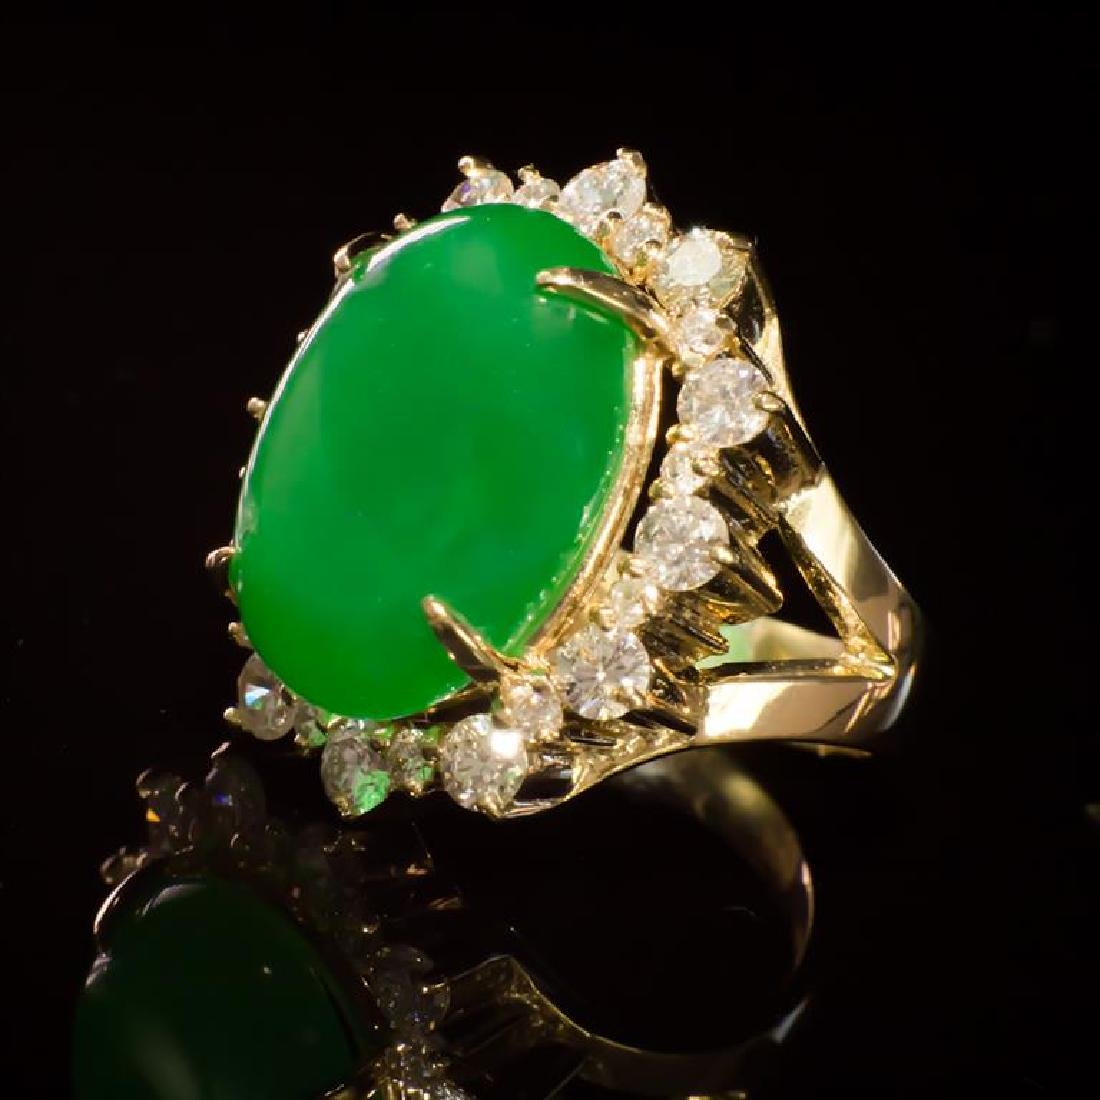 14K Gold 14.26ct Jadeite 2.41ct Diamond Ring - 2